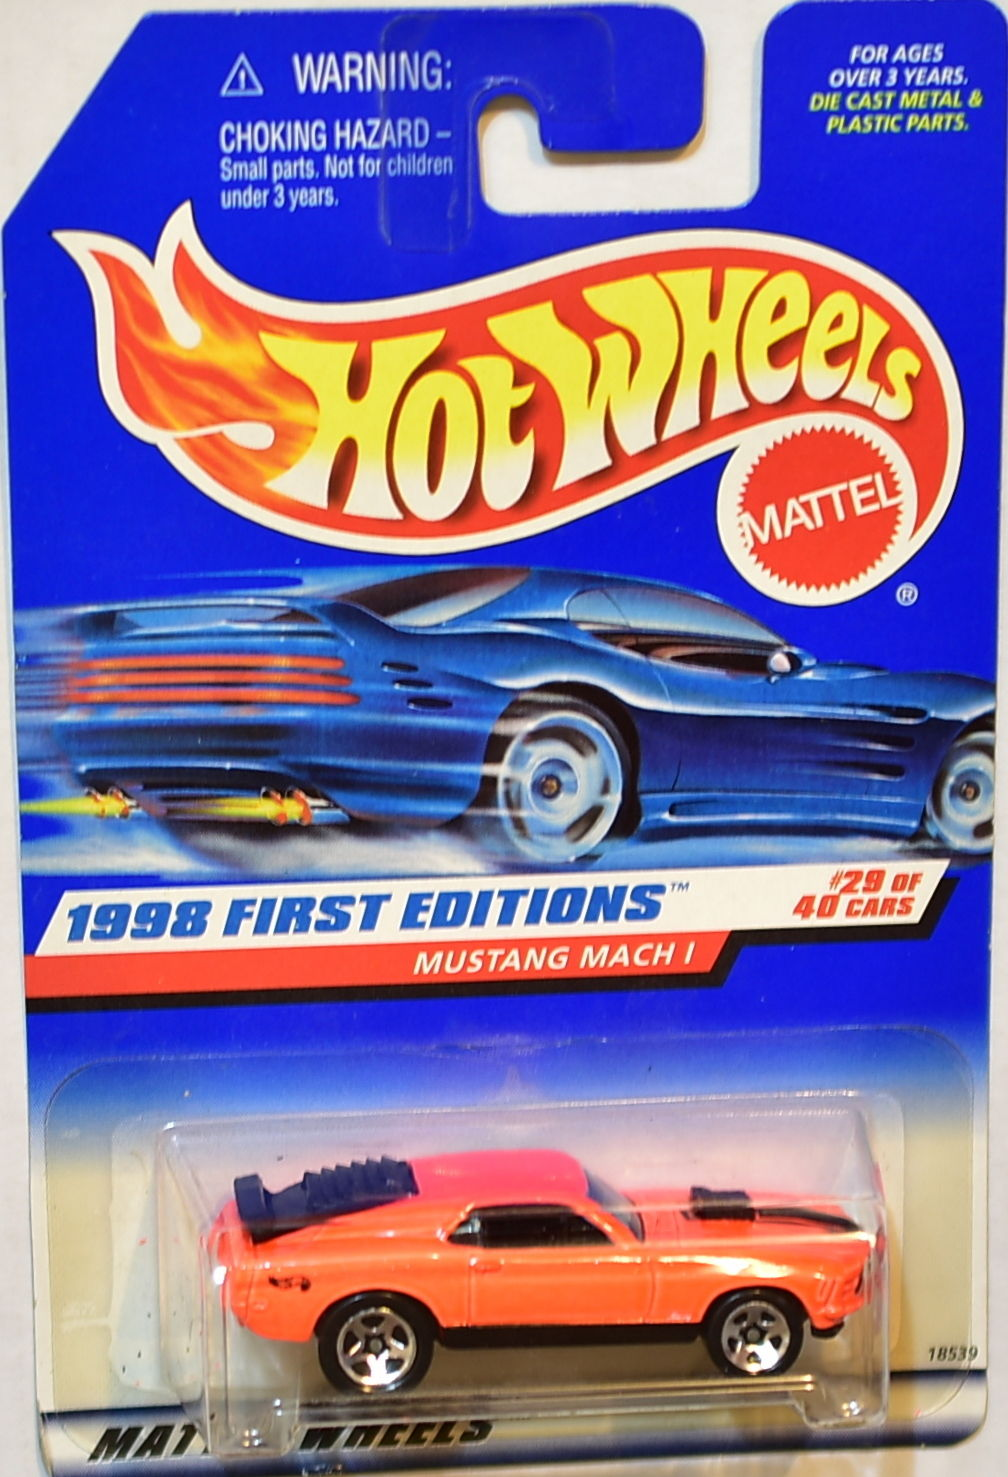 HOT WHEELS 1998 FIRST EDITIONS #29/40 MUSTANG MACH 1 ORANGE